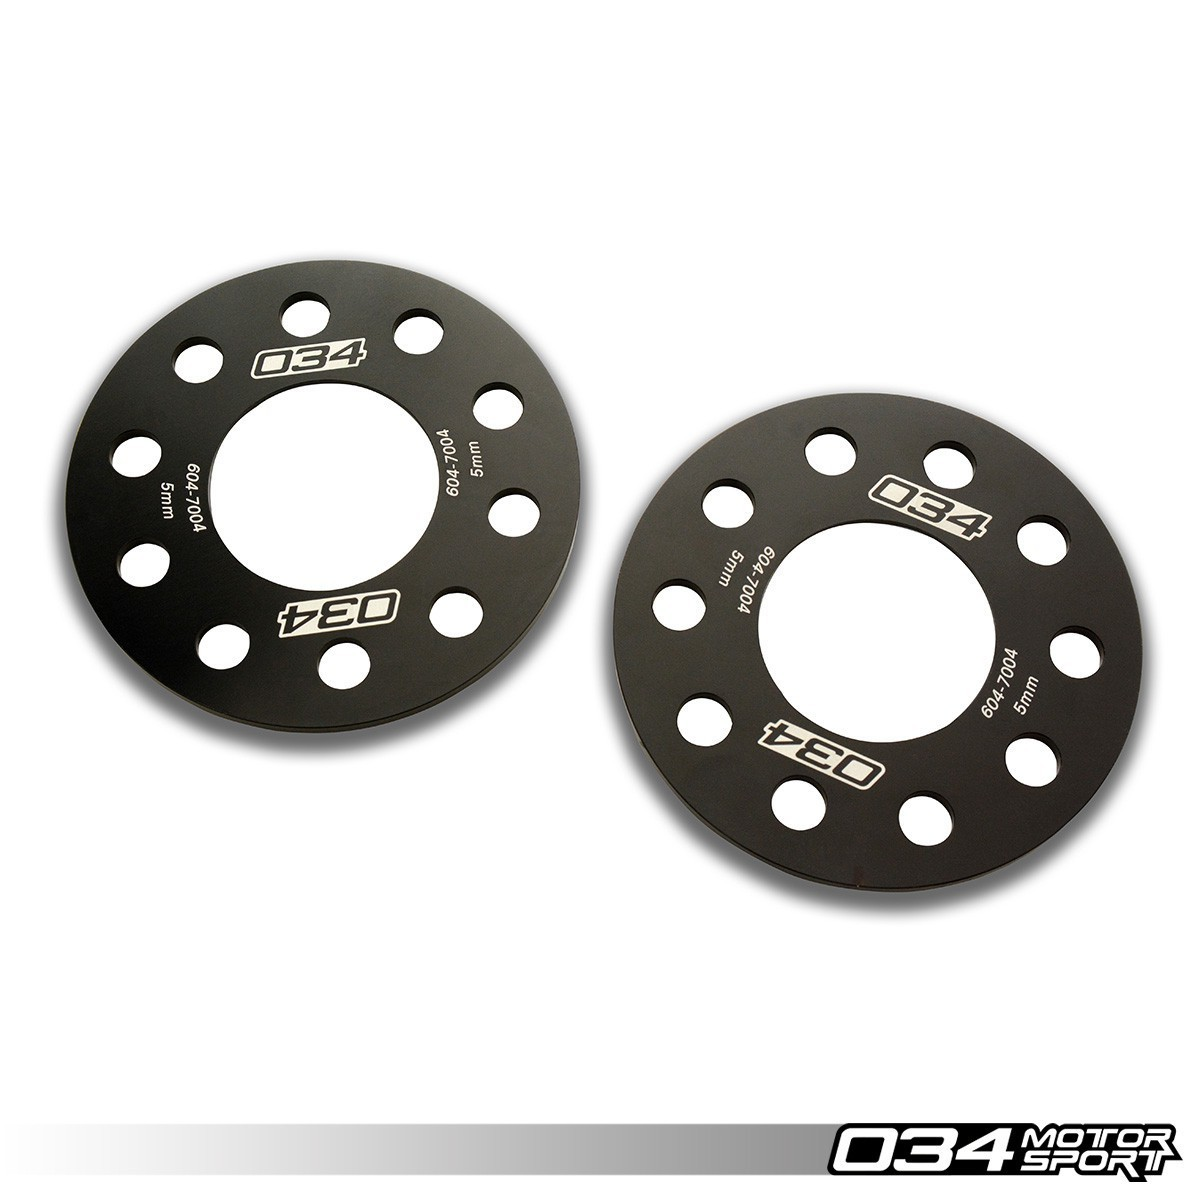 034 Wheel Spacer Pair, 5X112, 5mm Thick, 66.5mm Hub